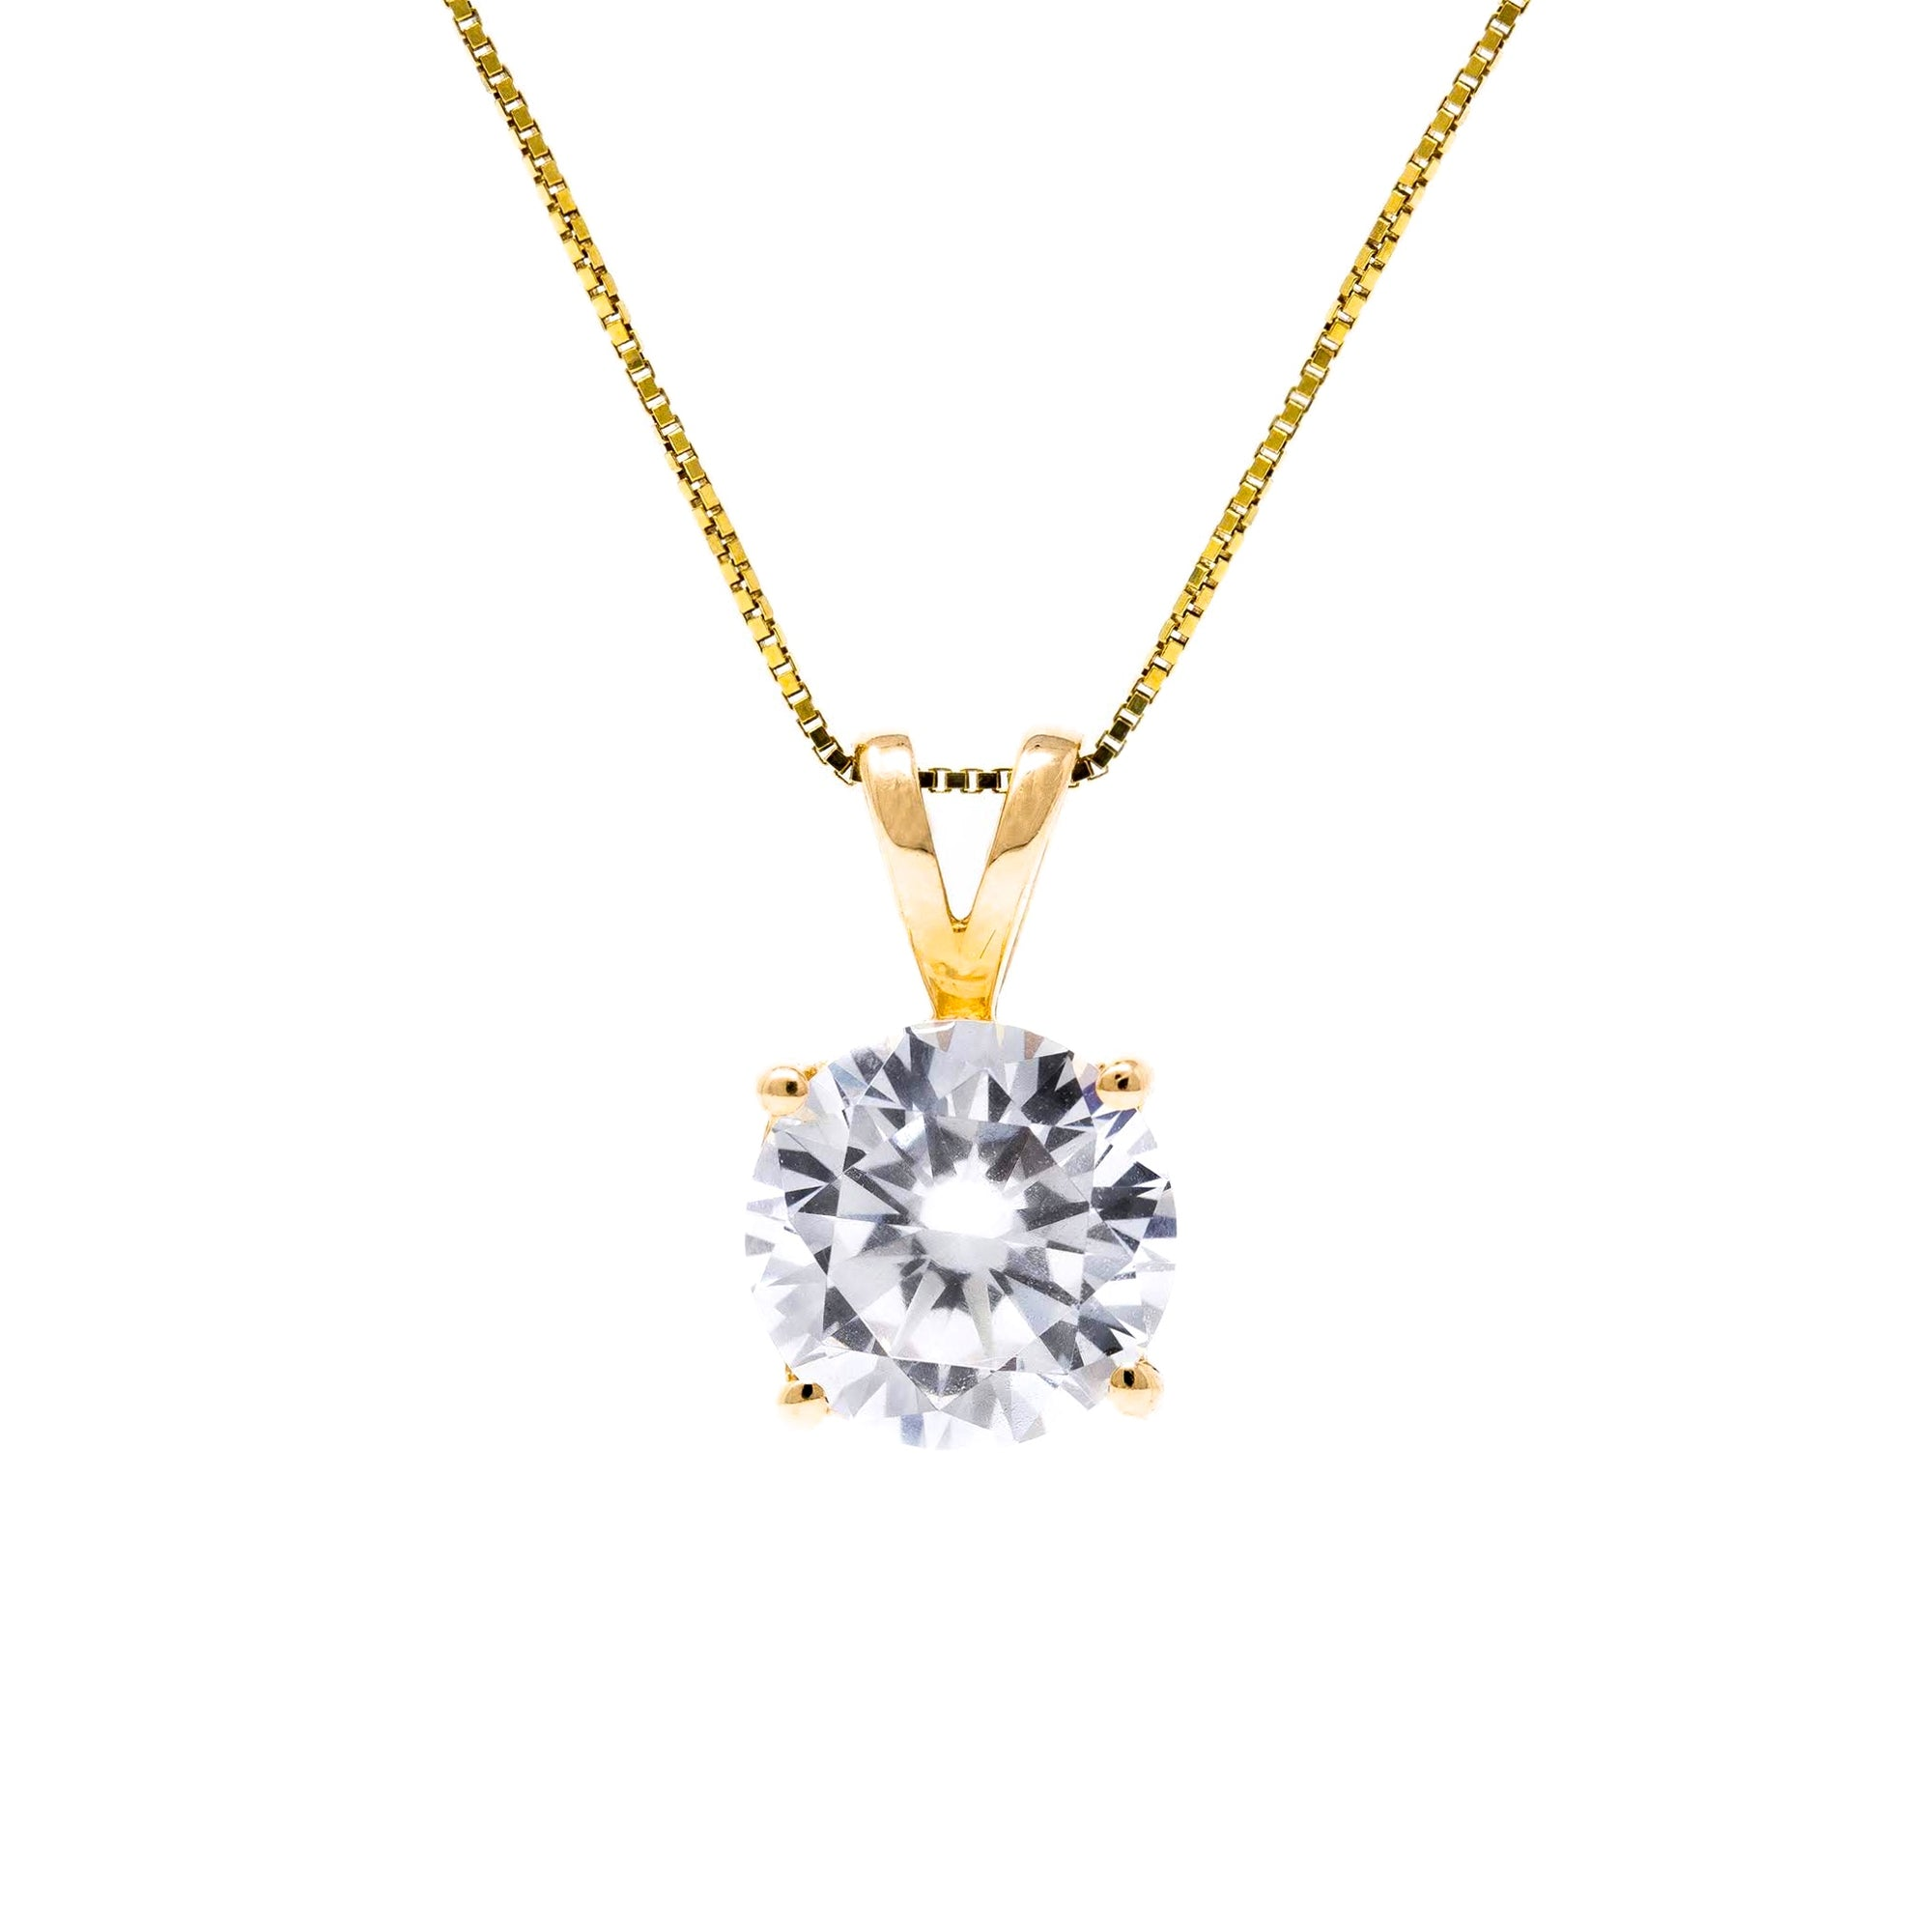 2 Ct Round Cut Solid 14k Yellow Gold Solitaire Pendant Necklace Glamour Life Diamonds